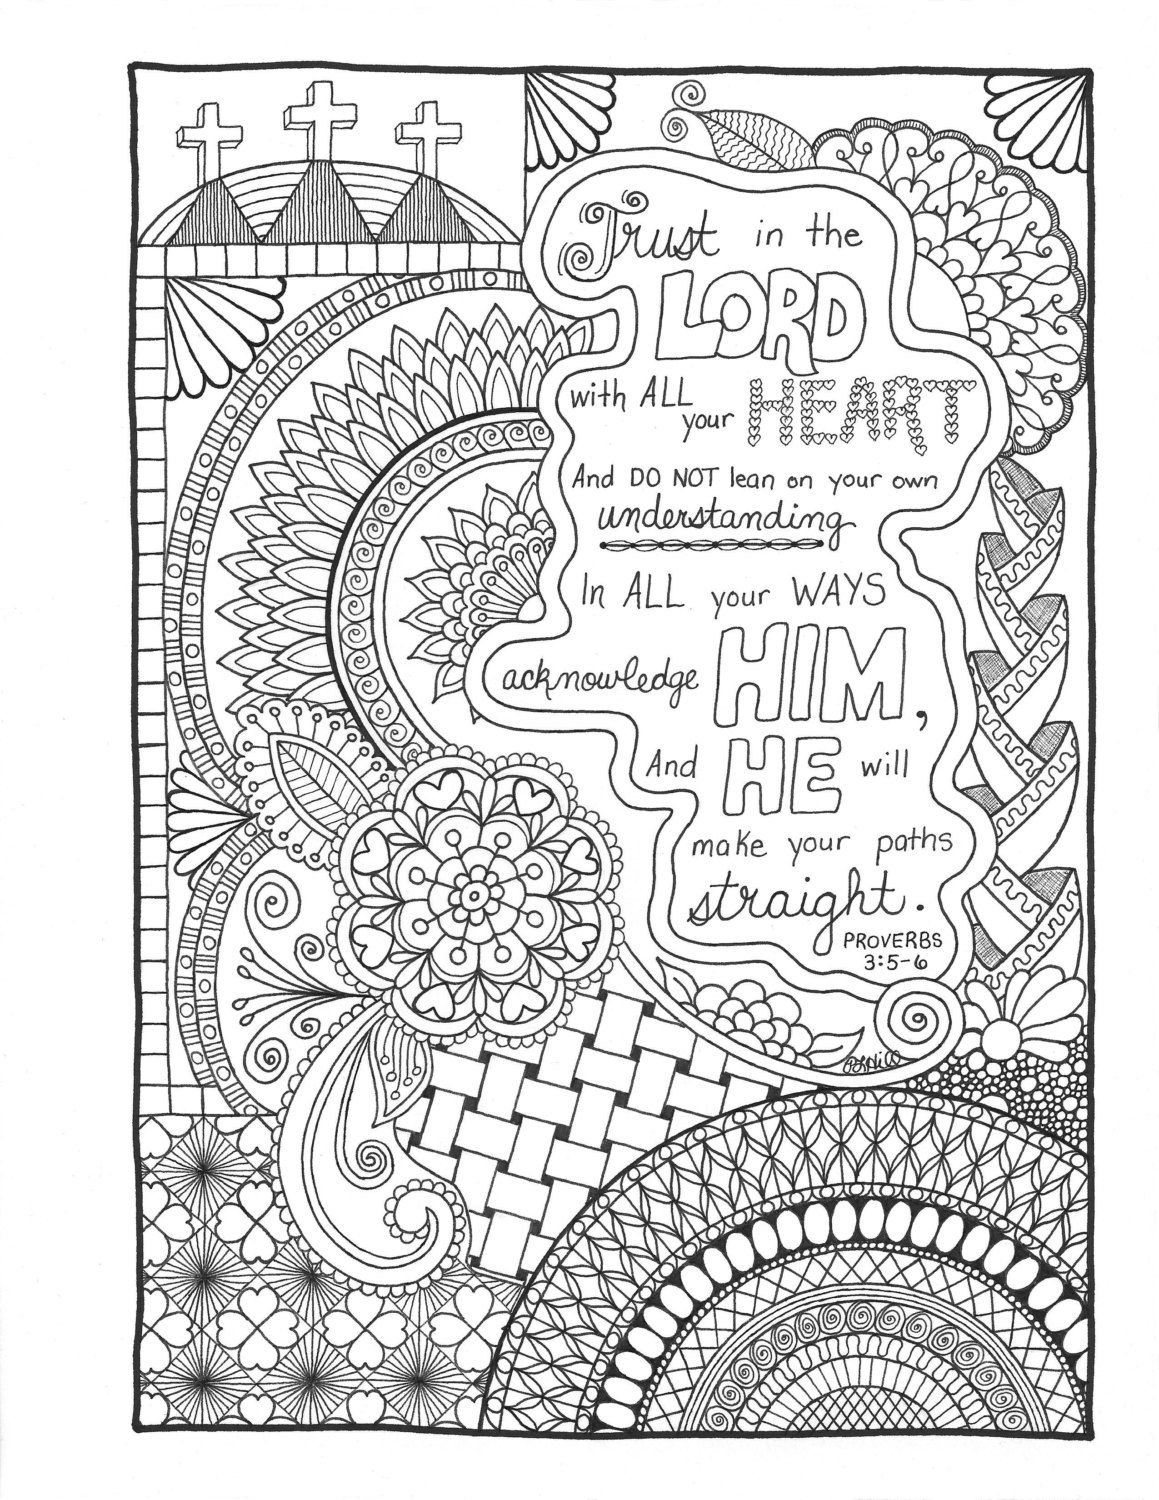 Proverbs3 5 6 Trust In The Lord Bible Verse Coloring Page Bible